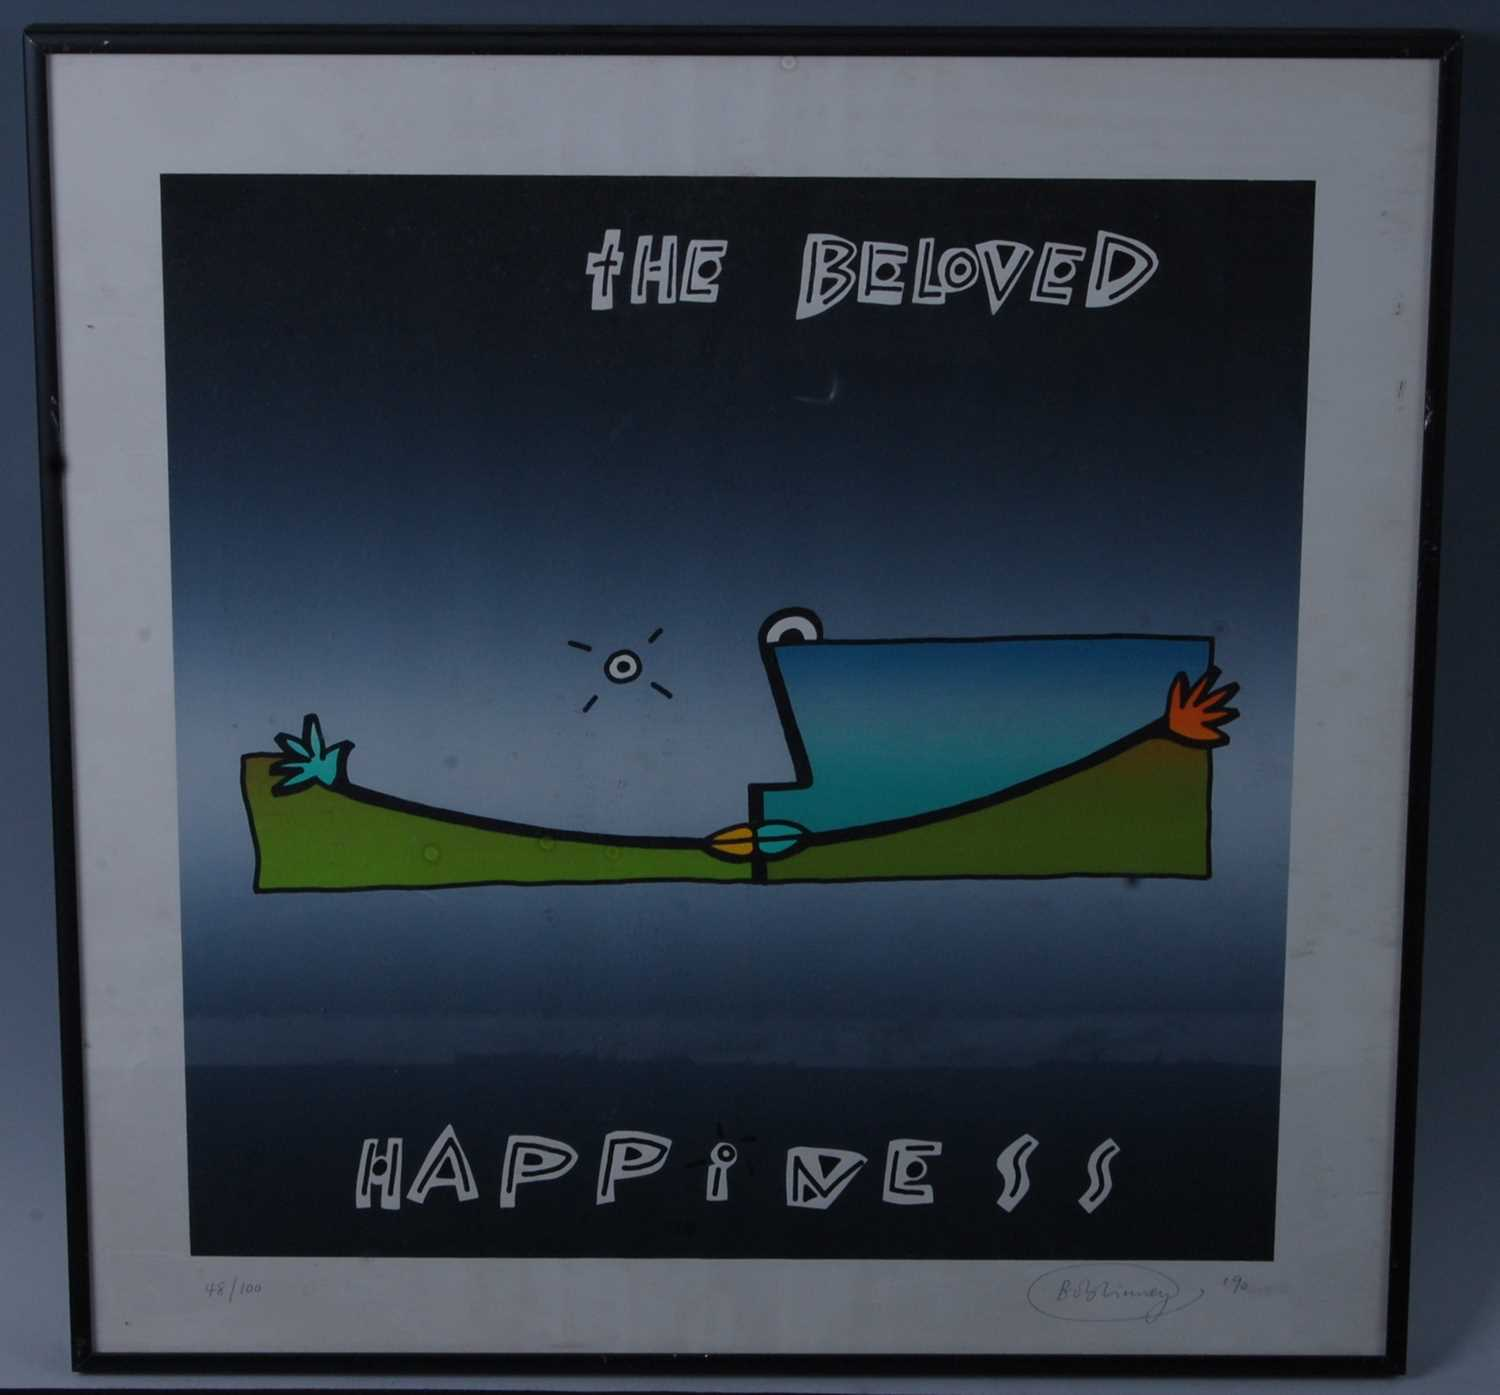 Lot 514-The Beloved - Happiness, a promotional...